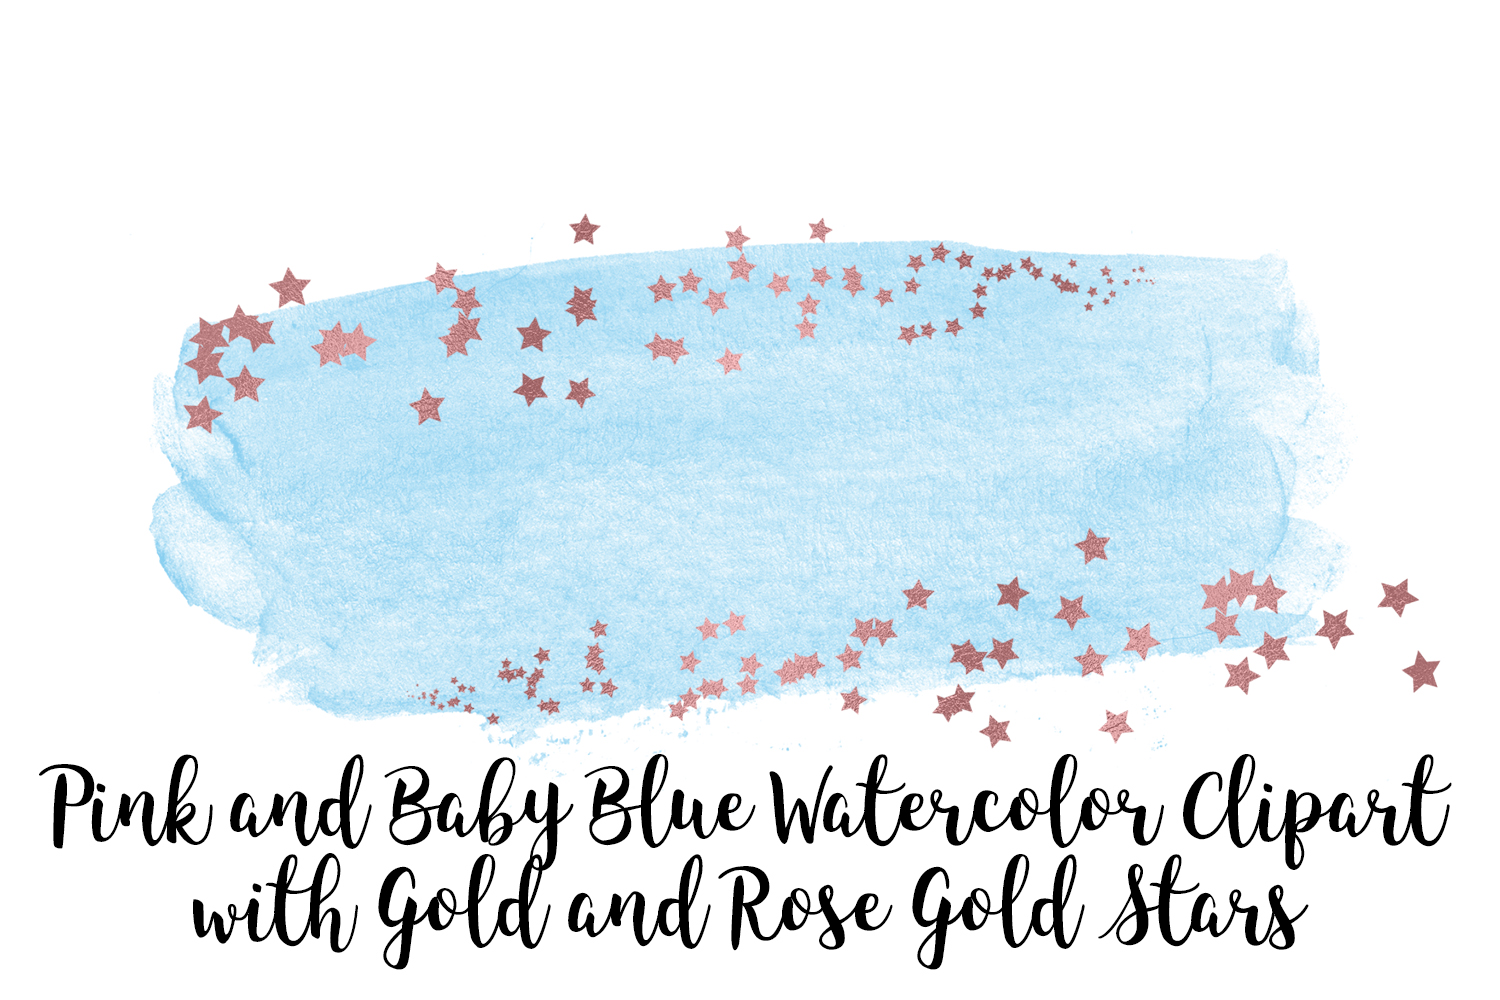 Pink and Baby Blue Watercolor Clip Art, Gold and Rose Gold example image 4